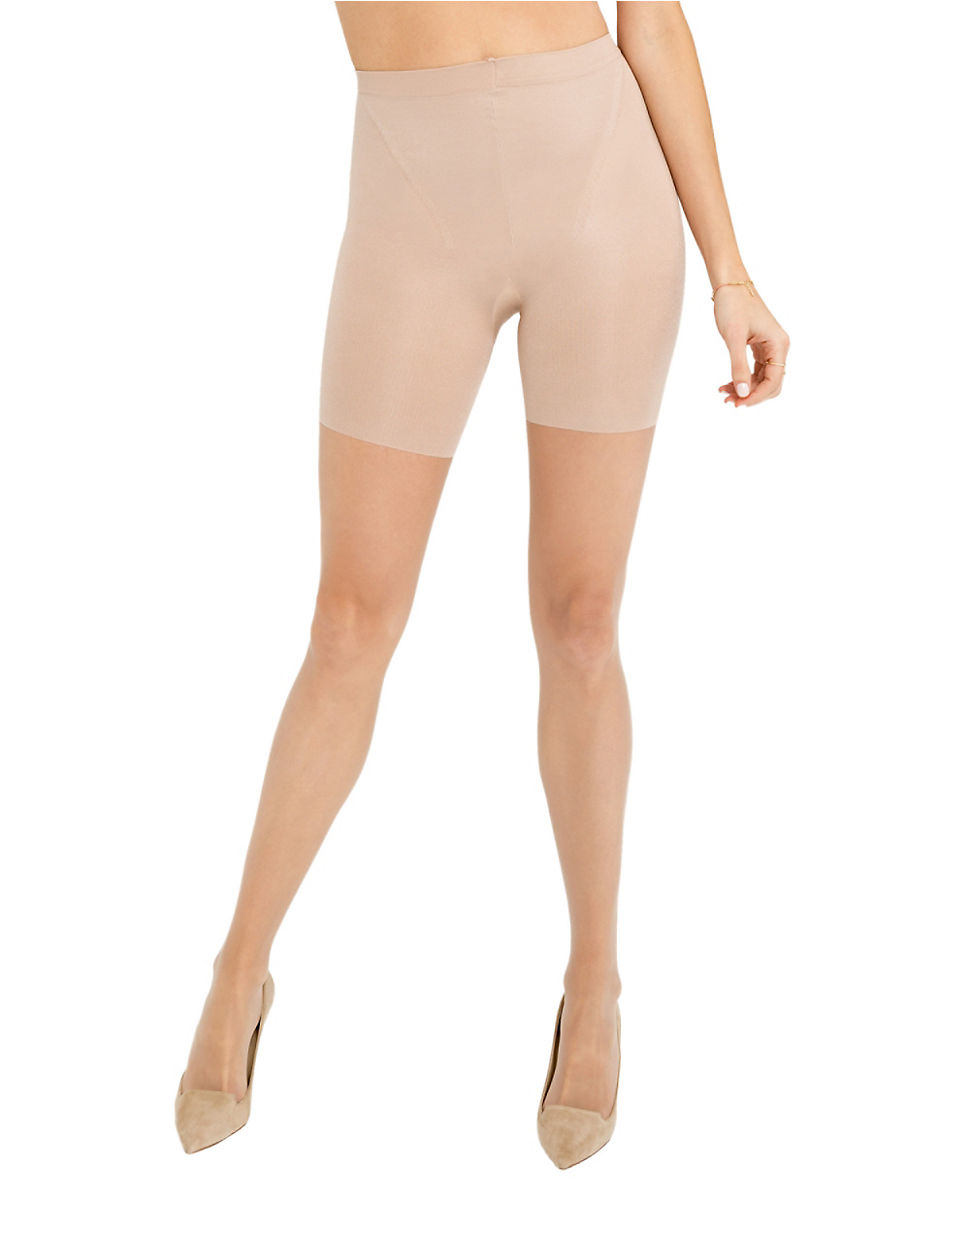 Spanx Pantyhose Clothing and Accessories